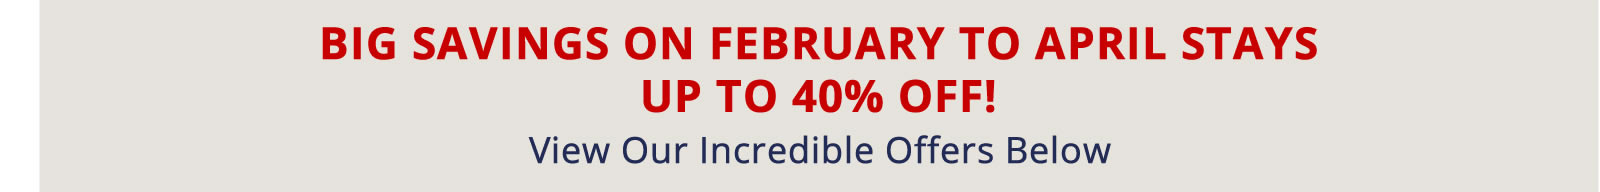 Book Now for Big Savings on February to April Stays. Up to 40% off!